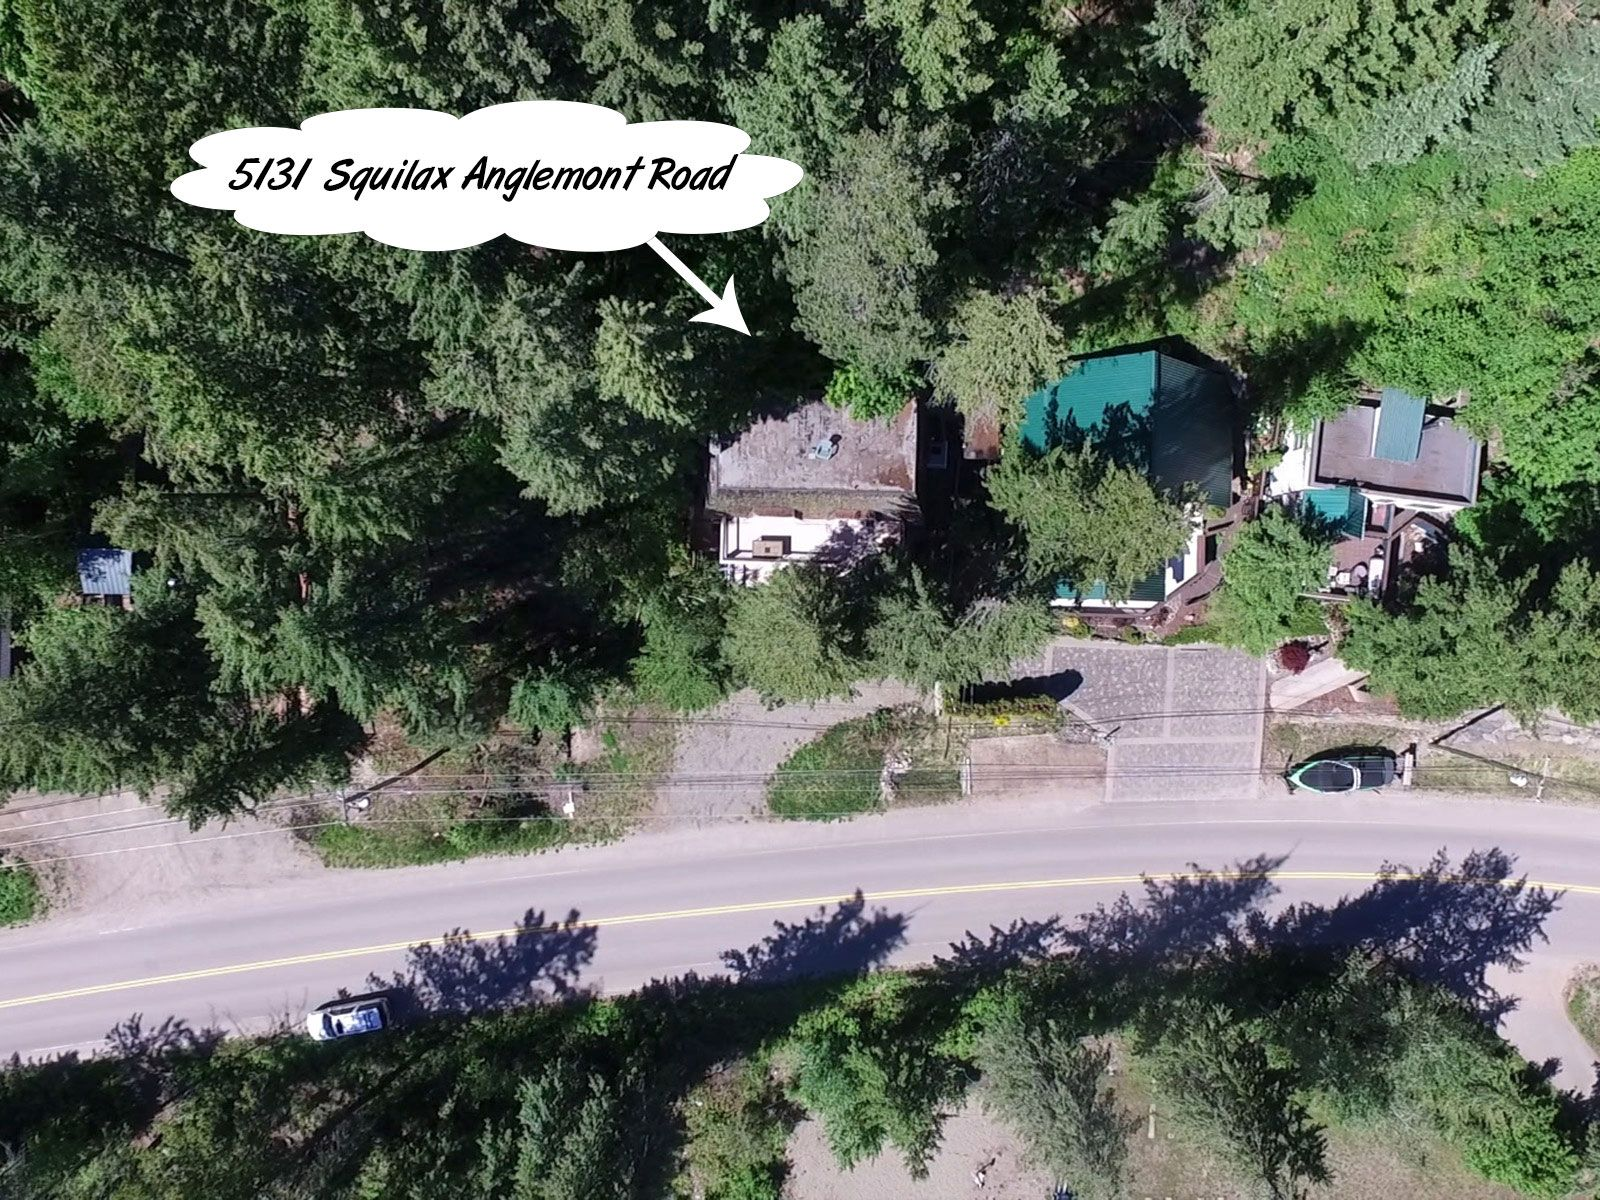 Photo 6: Photos: 5131 Squilax Anglemont Road in Celista: House for sale : MLS®# 10205519